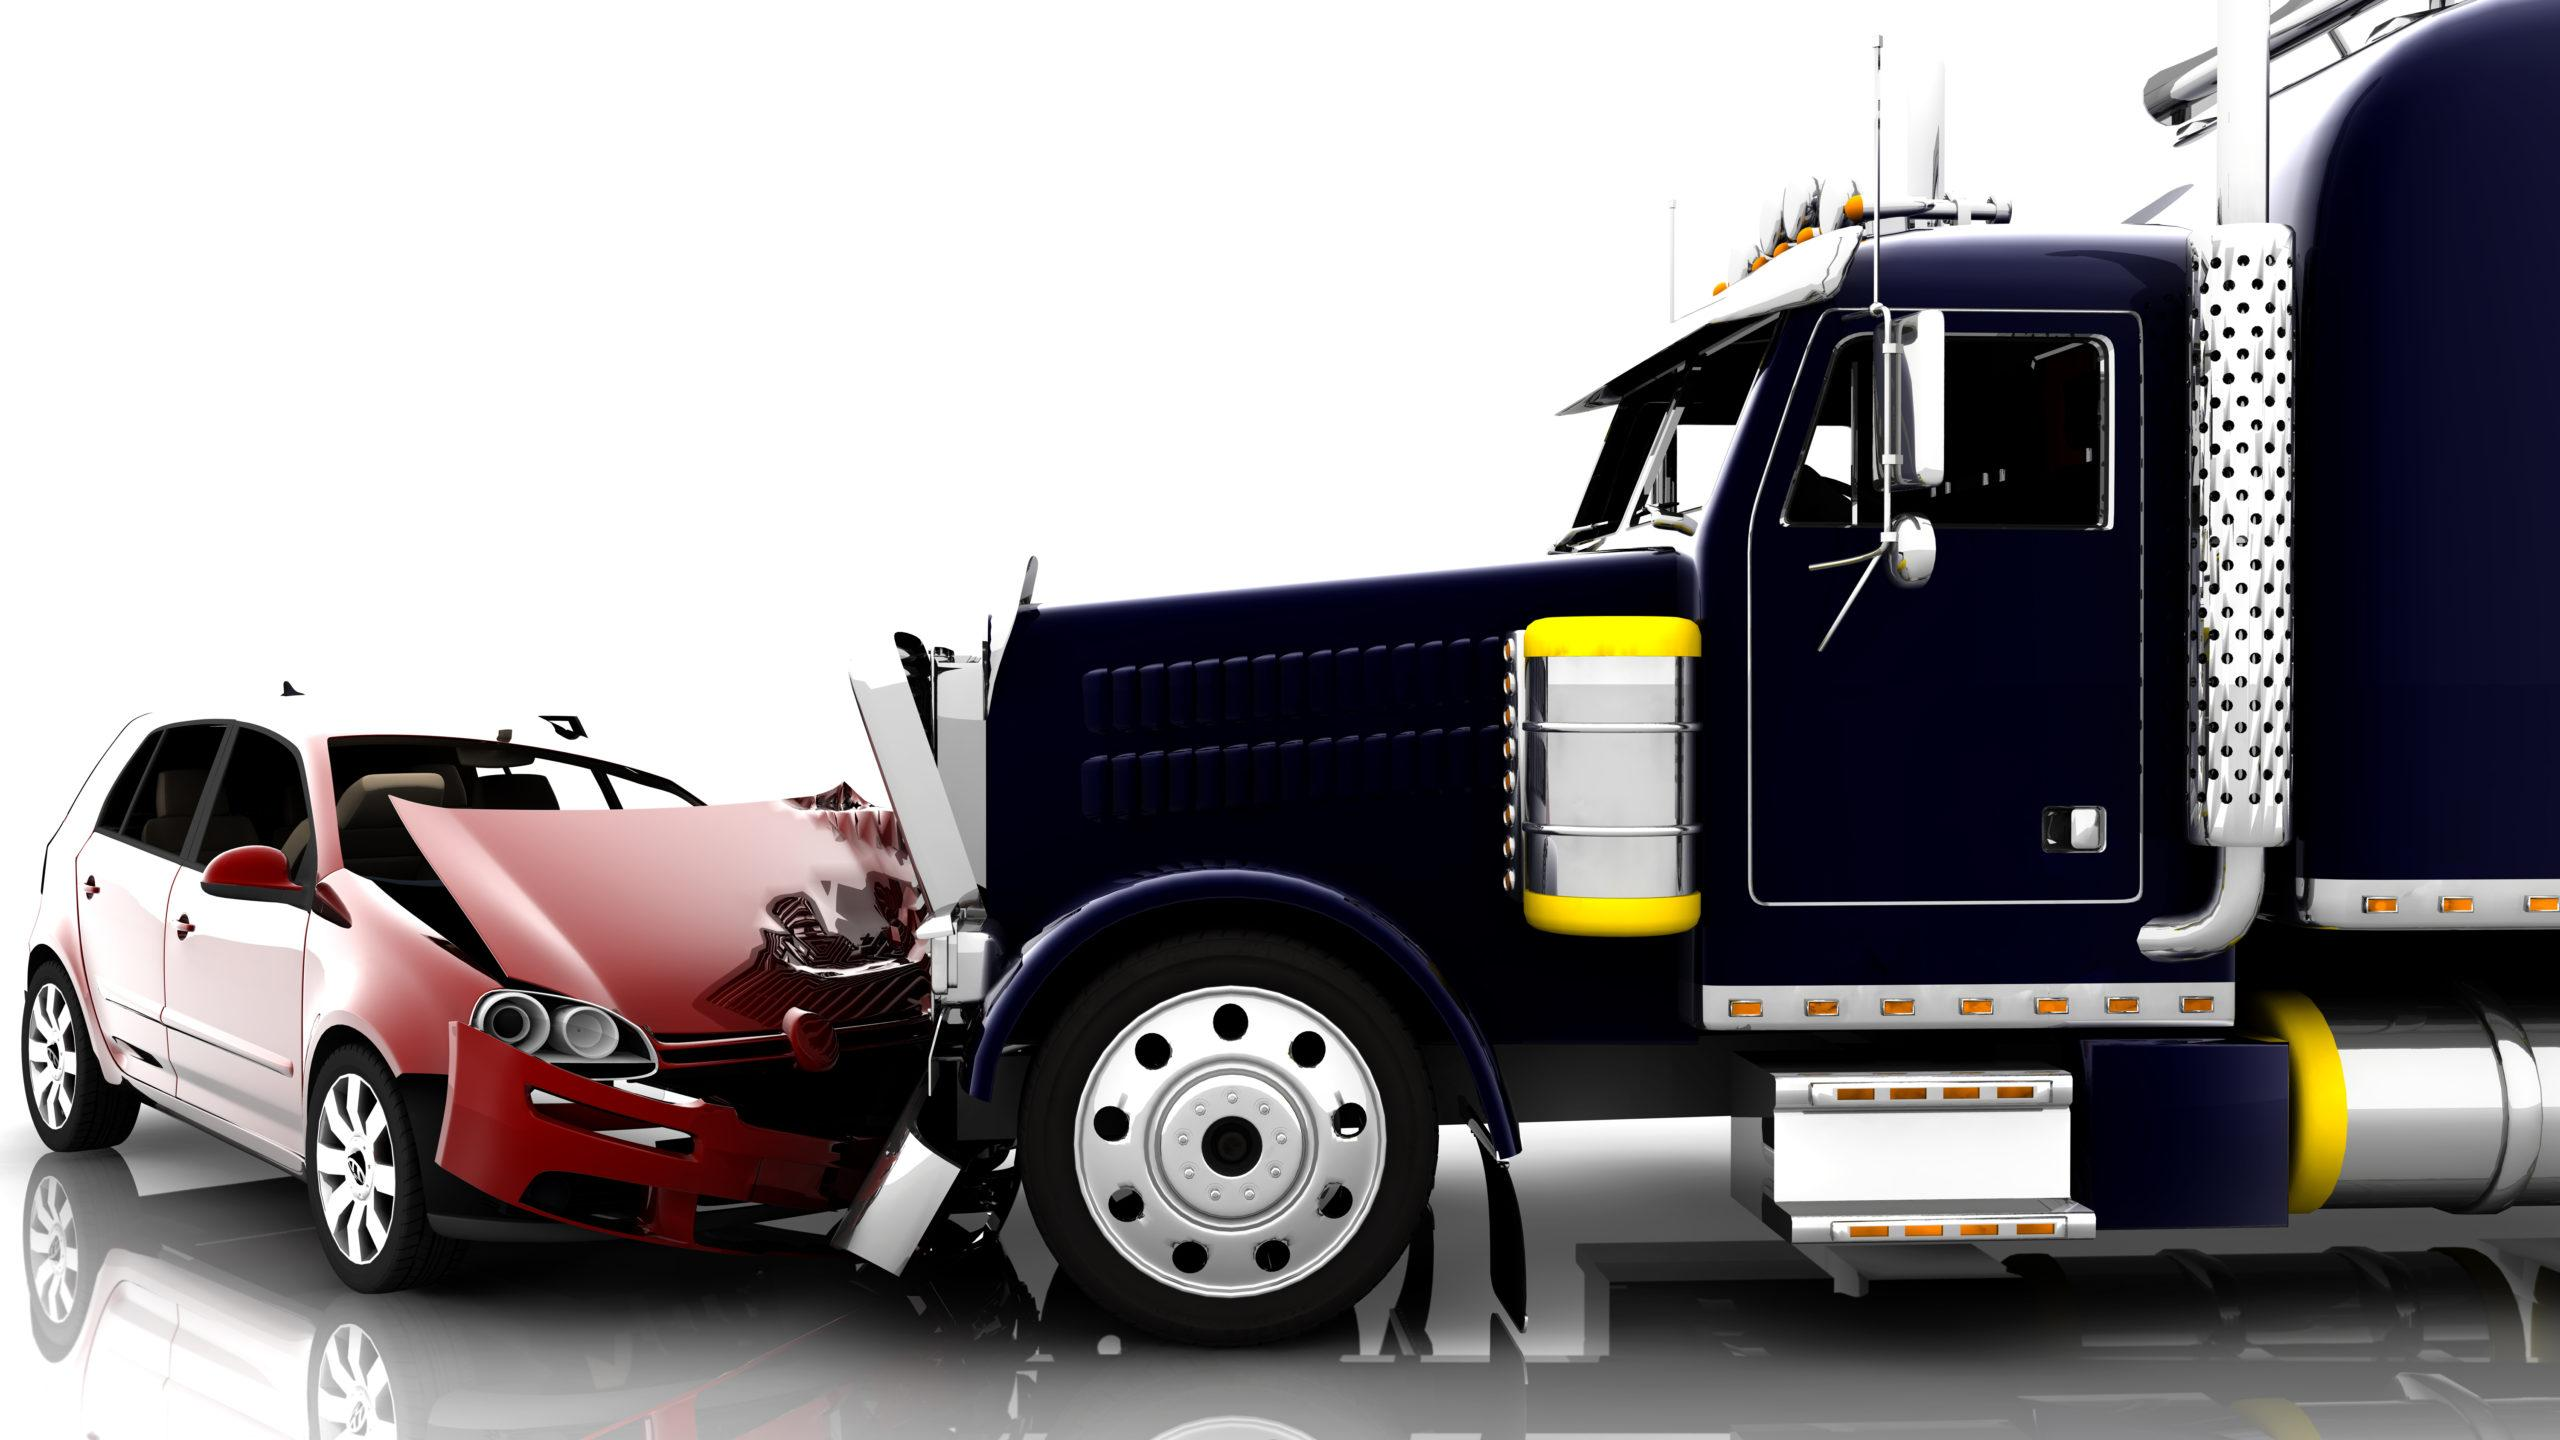 Car Accidents 101: What Does an Auto Accident Attorney Do?